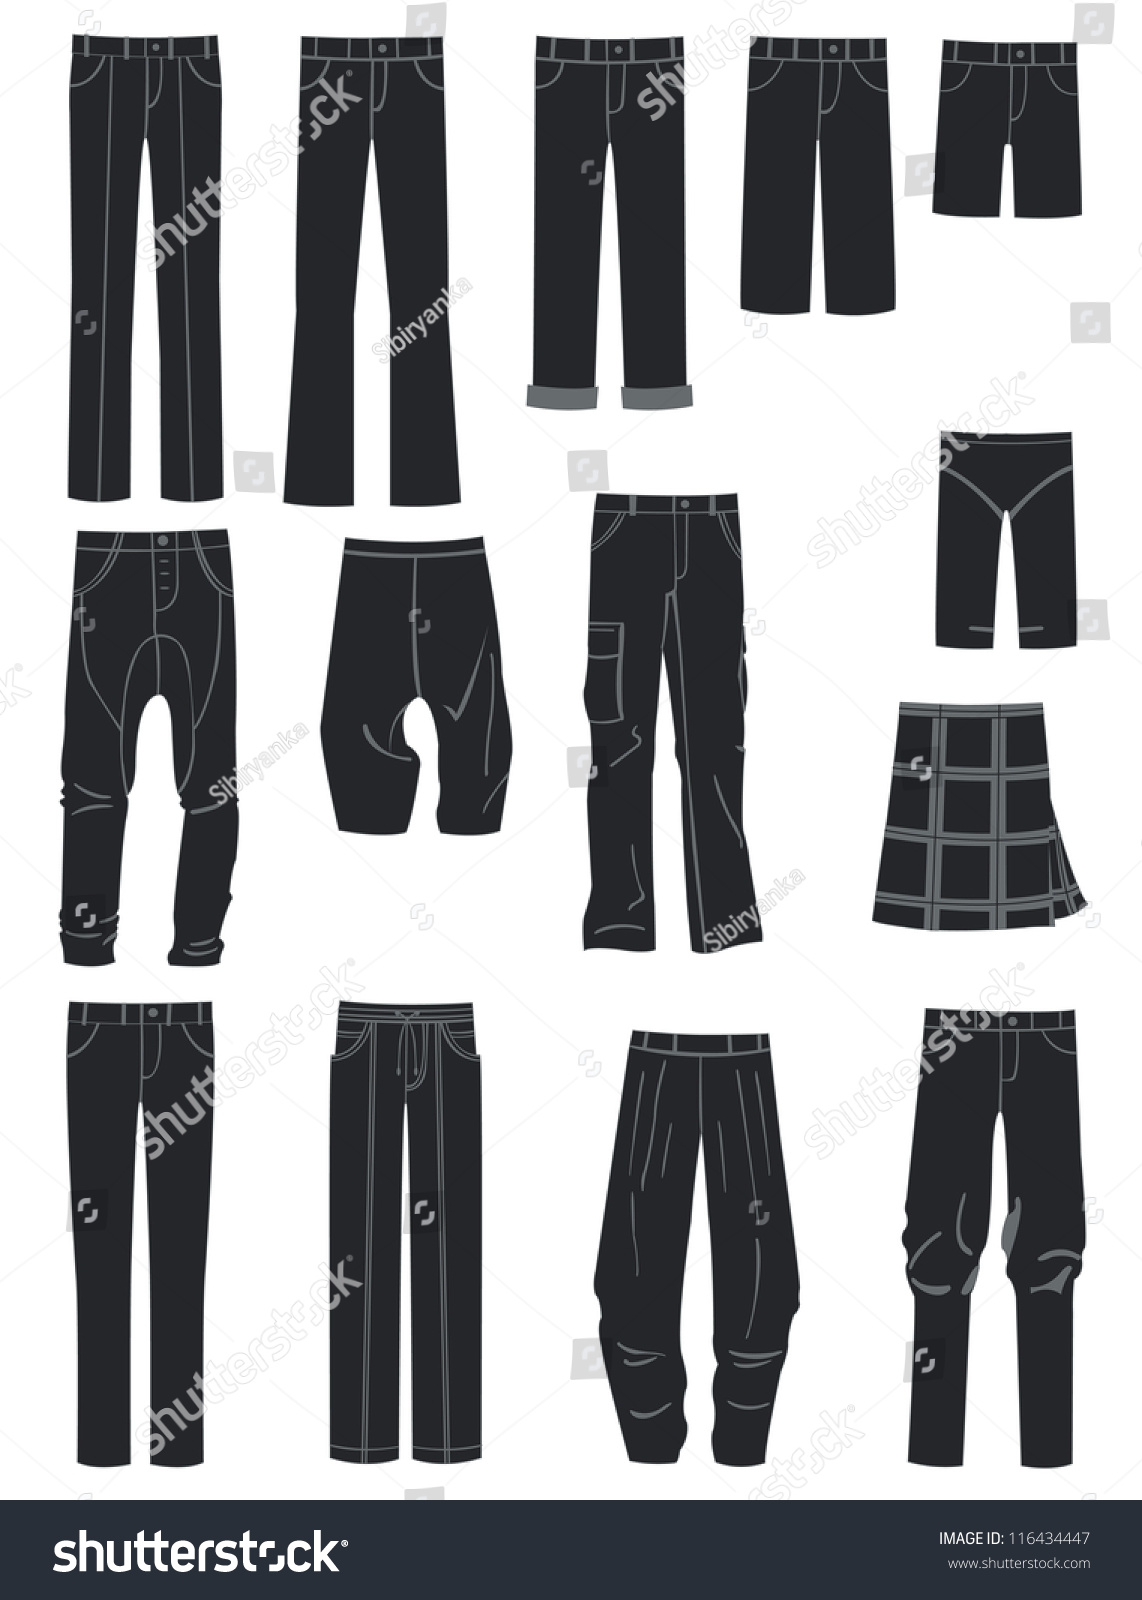 Different Styles Of Pants For Men